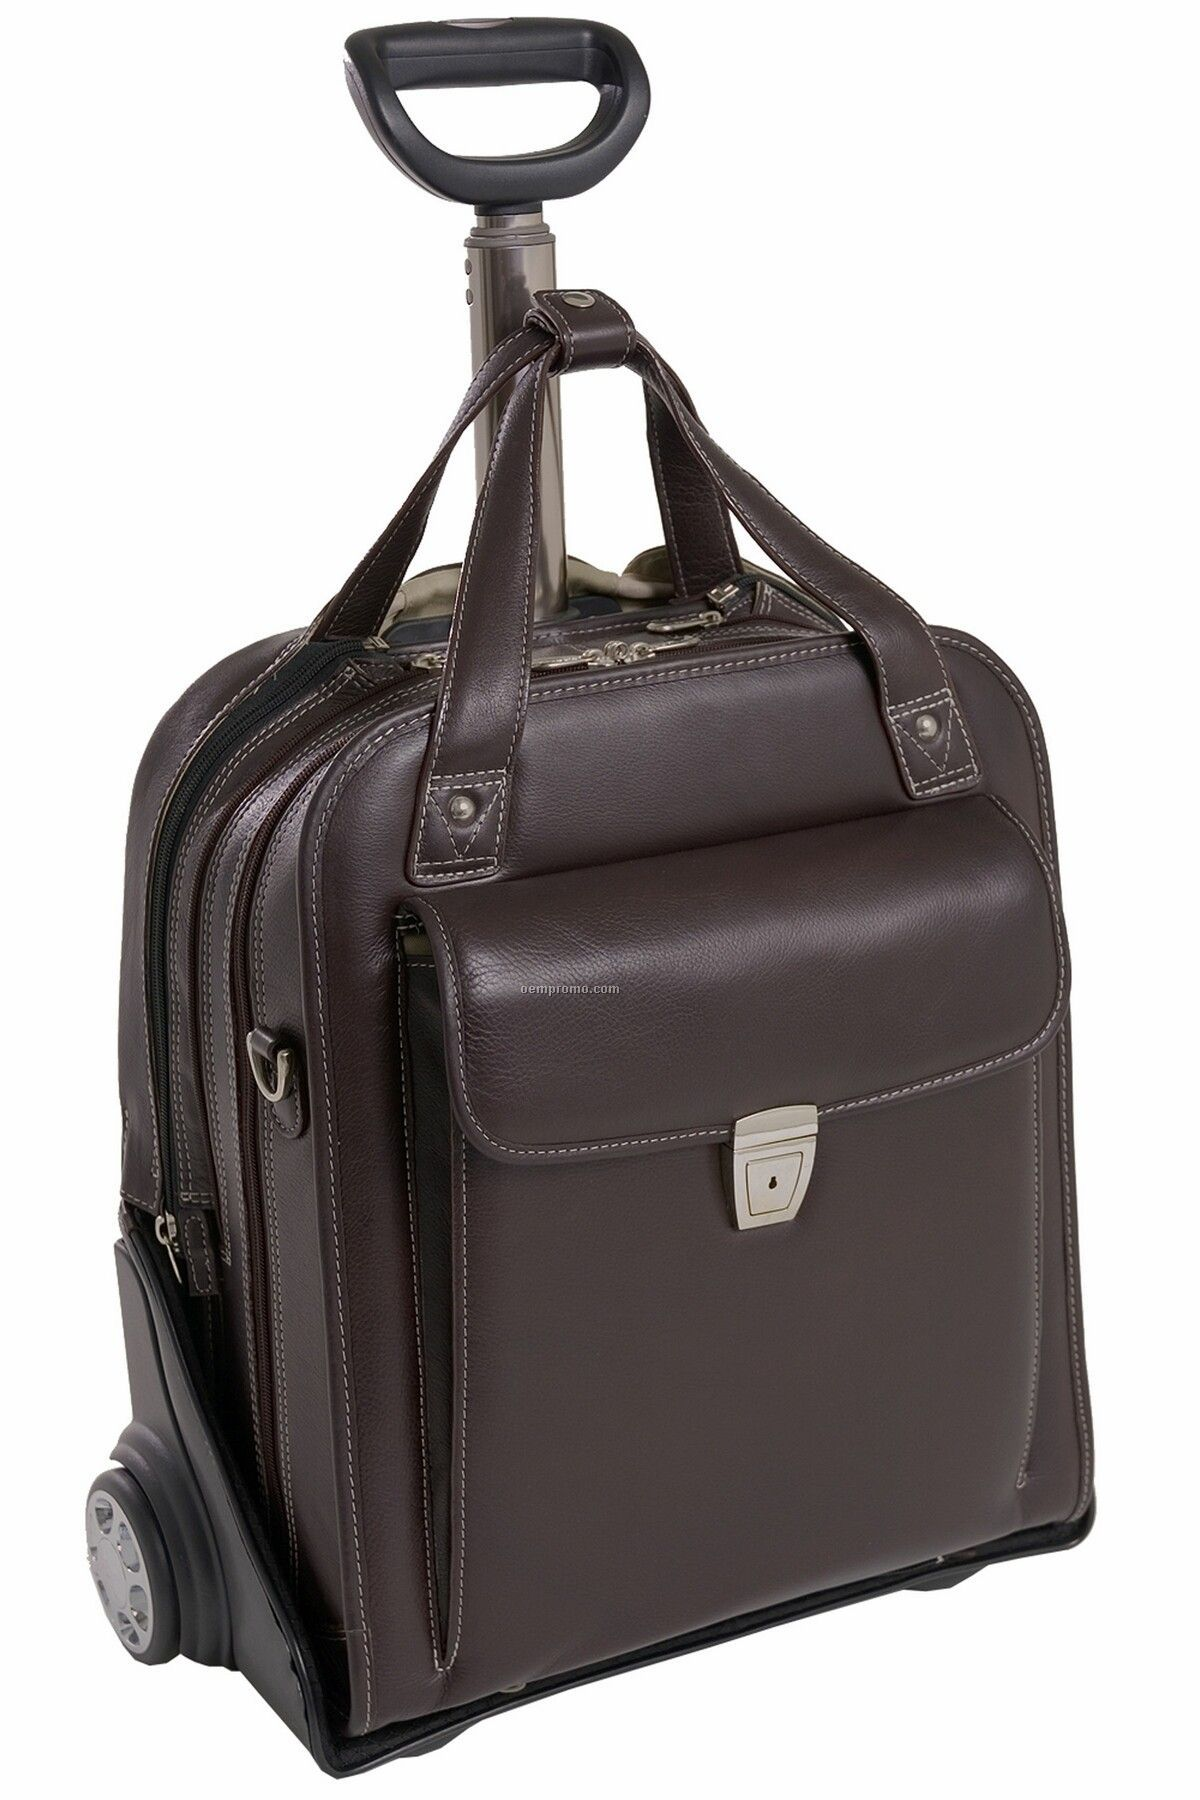 Pastenello Leather Vertical Wheeled Laptop Case - Chocolate Brown